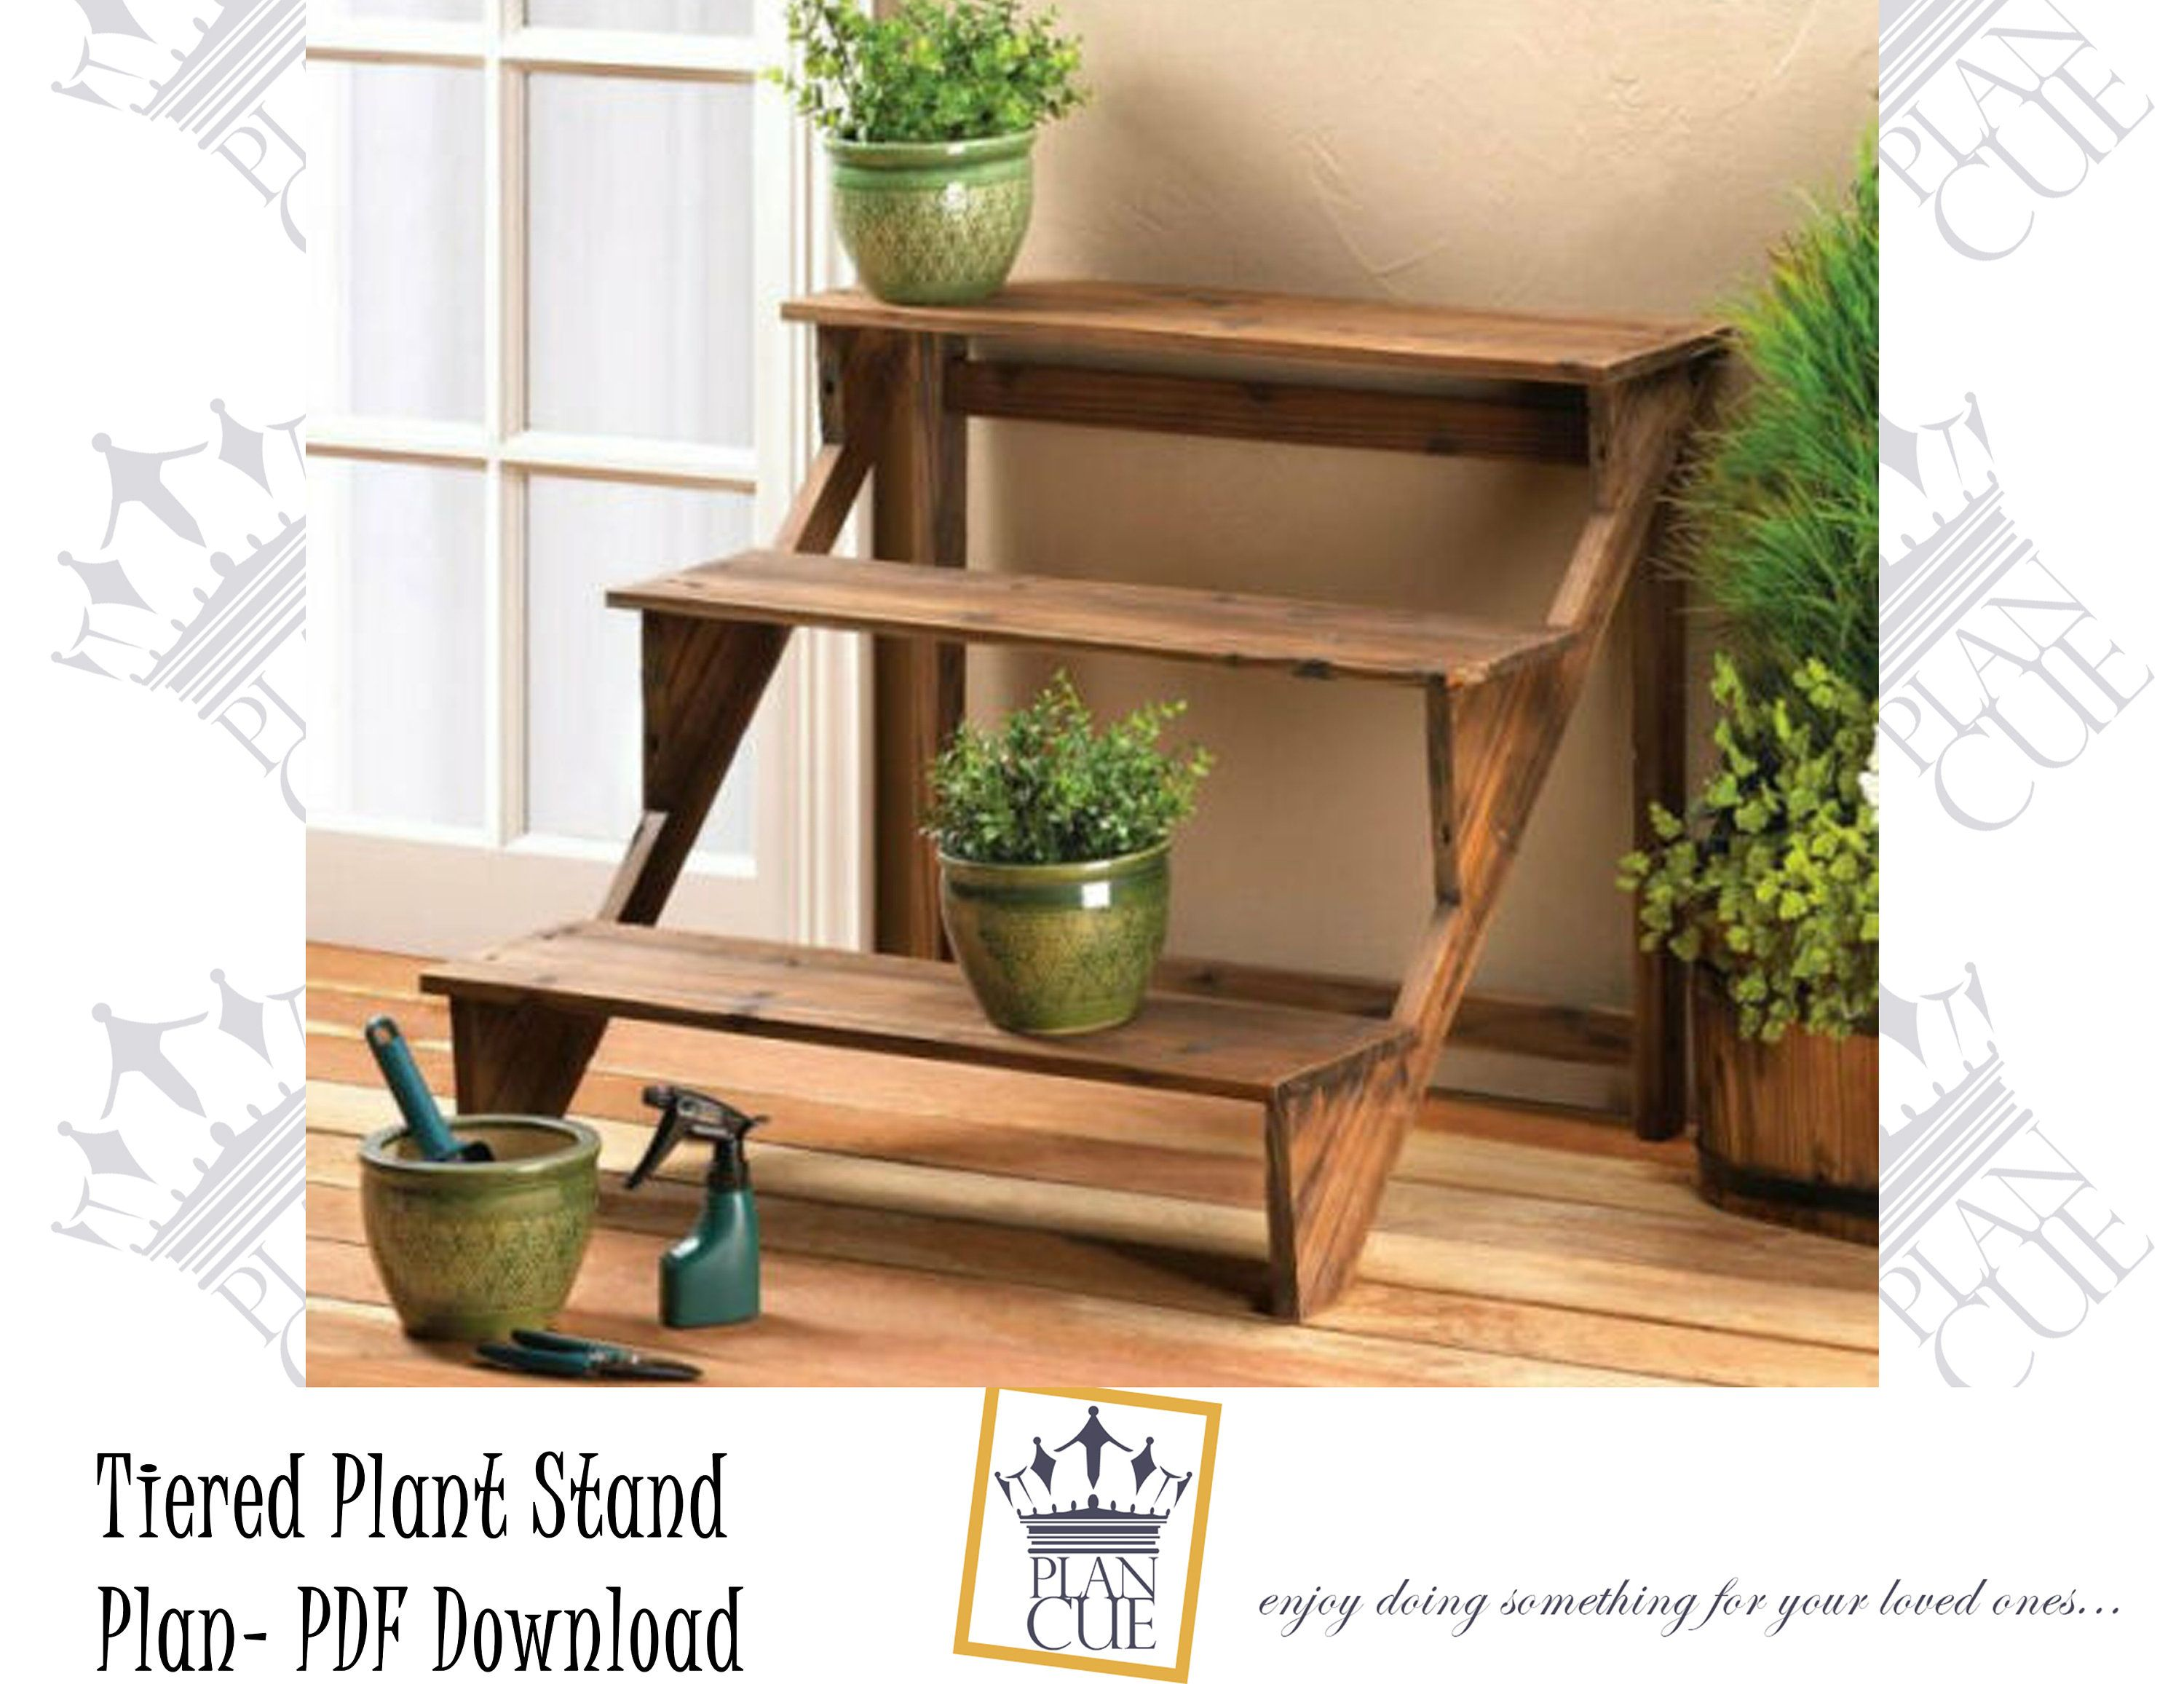 Tiered Plant Stand Plan Diy Plan For Flower Stand Craft Fair Display Stand Plans Cupcake Stand 3 Tier Plan Wooden Plant Stands Wood Plant Stand Plant Stand